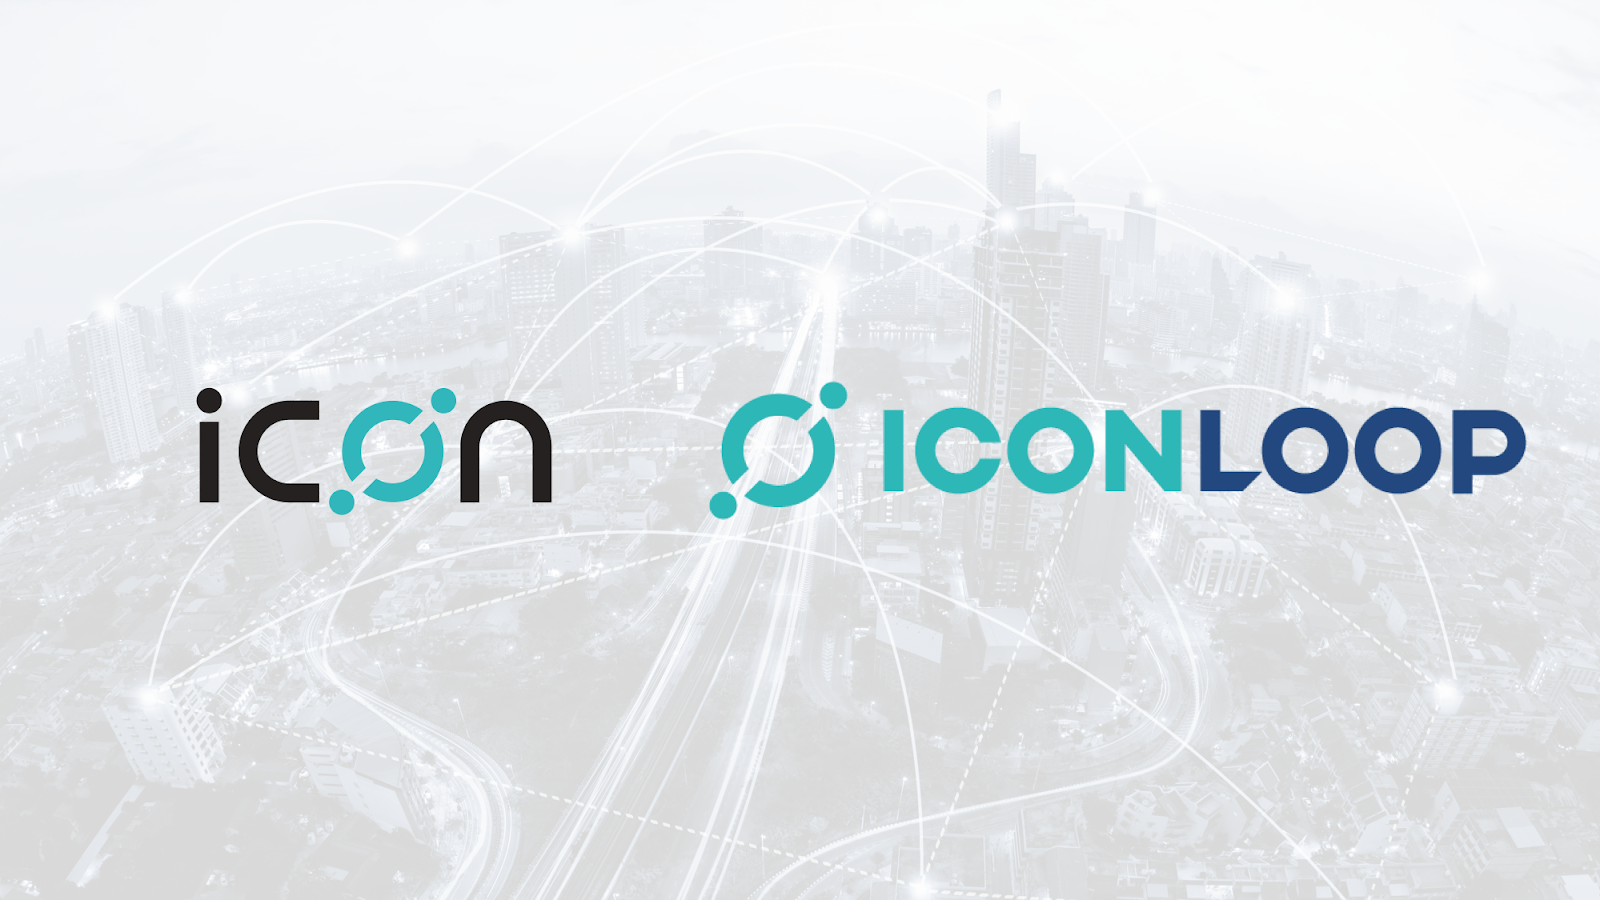 0 TqSTpPkifvKQlq6n - ICONLOOP Makes Important Move To Protect Privacy In 5G Environment While ICON's Popularity Is On The Rise